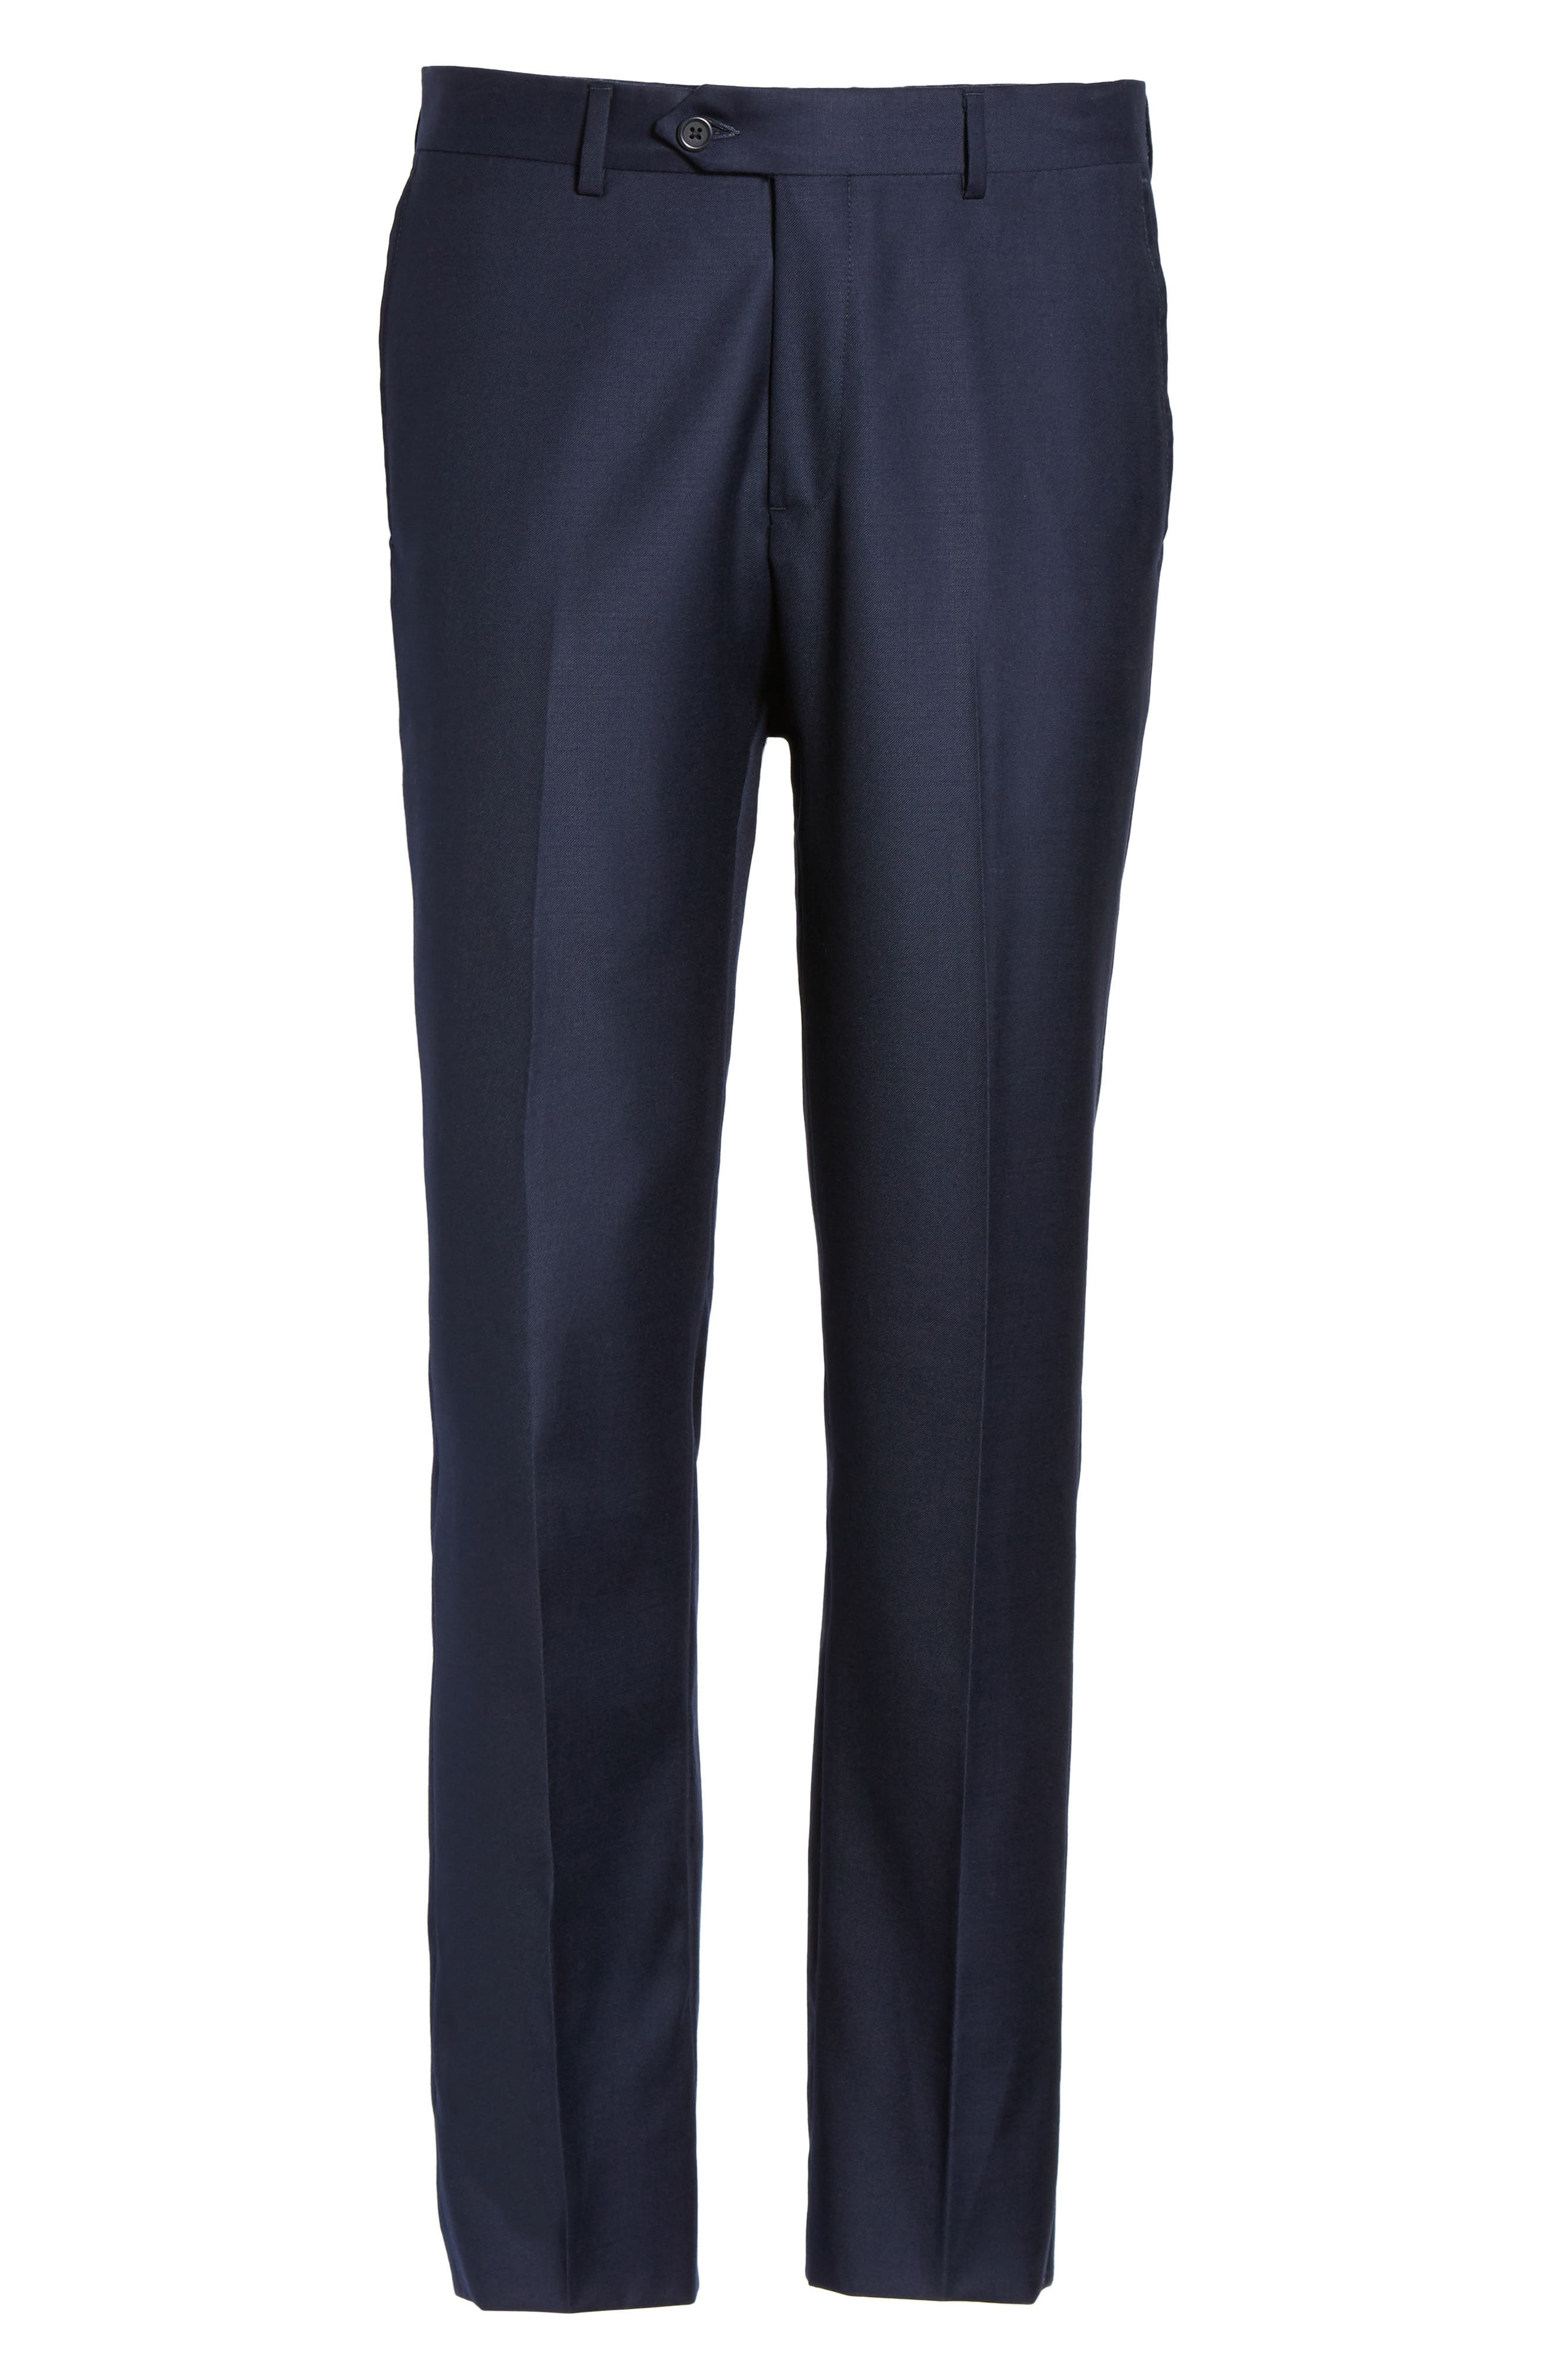 Flat Front Solid Wool Trousers,                             Alternate thumbnail 34, color,